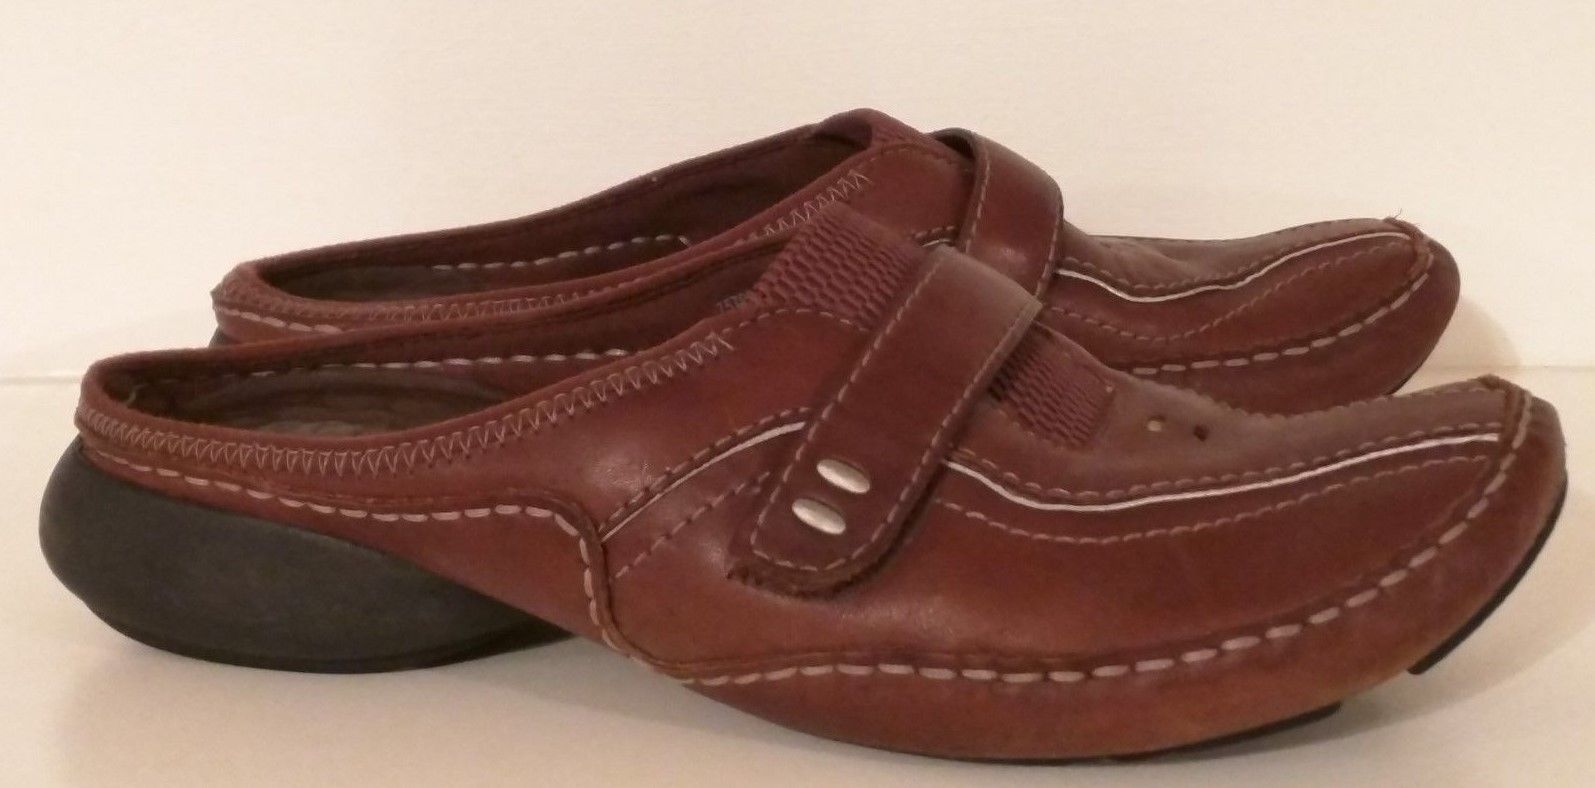 PRIVO by Clarks 75799 - Brown Leather Slip-on Mule Shoes - Women's Size: 7M